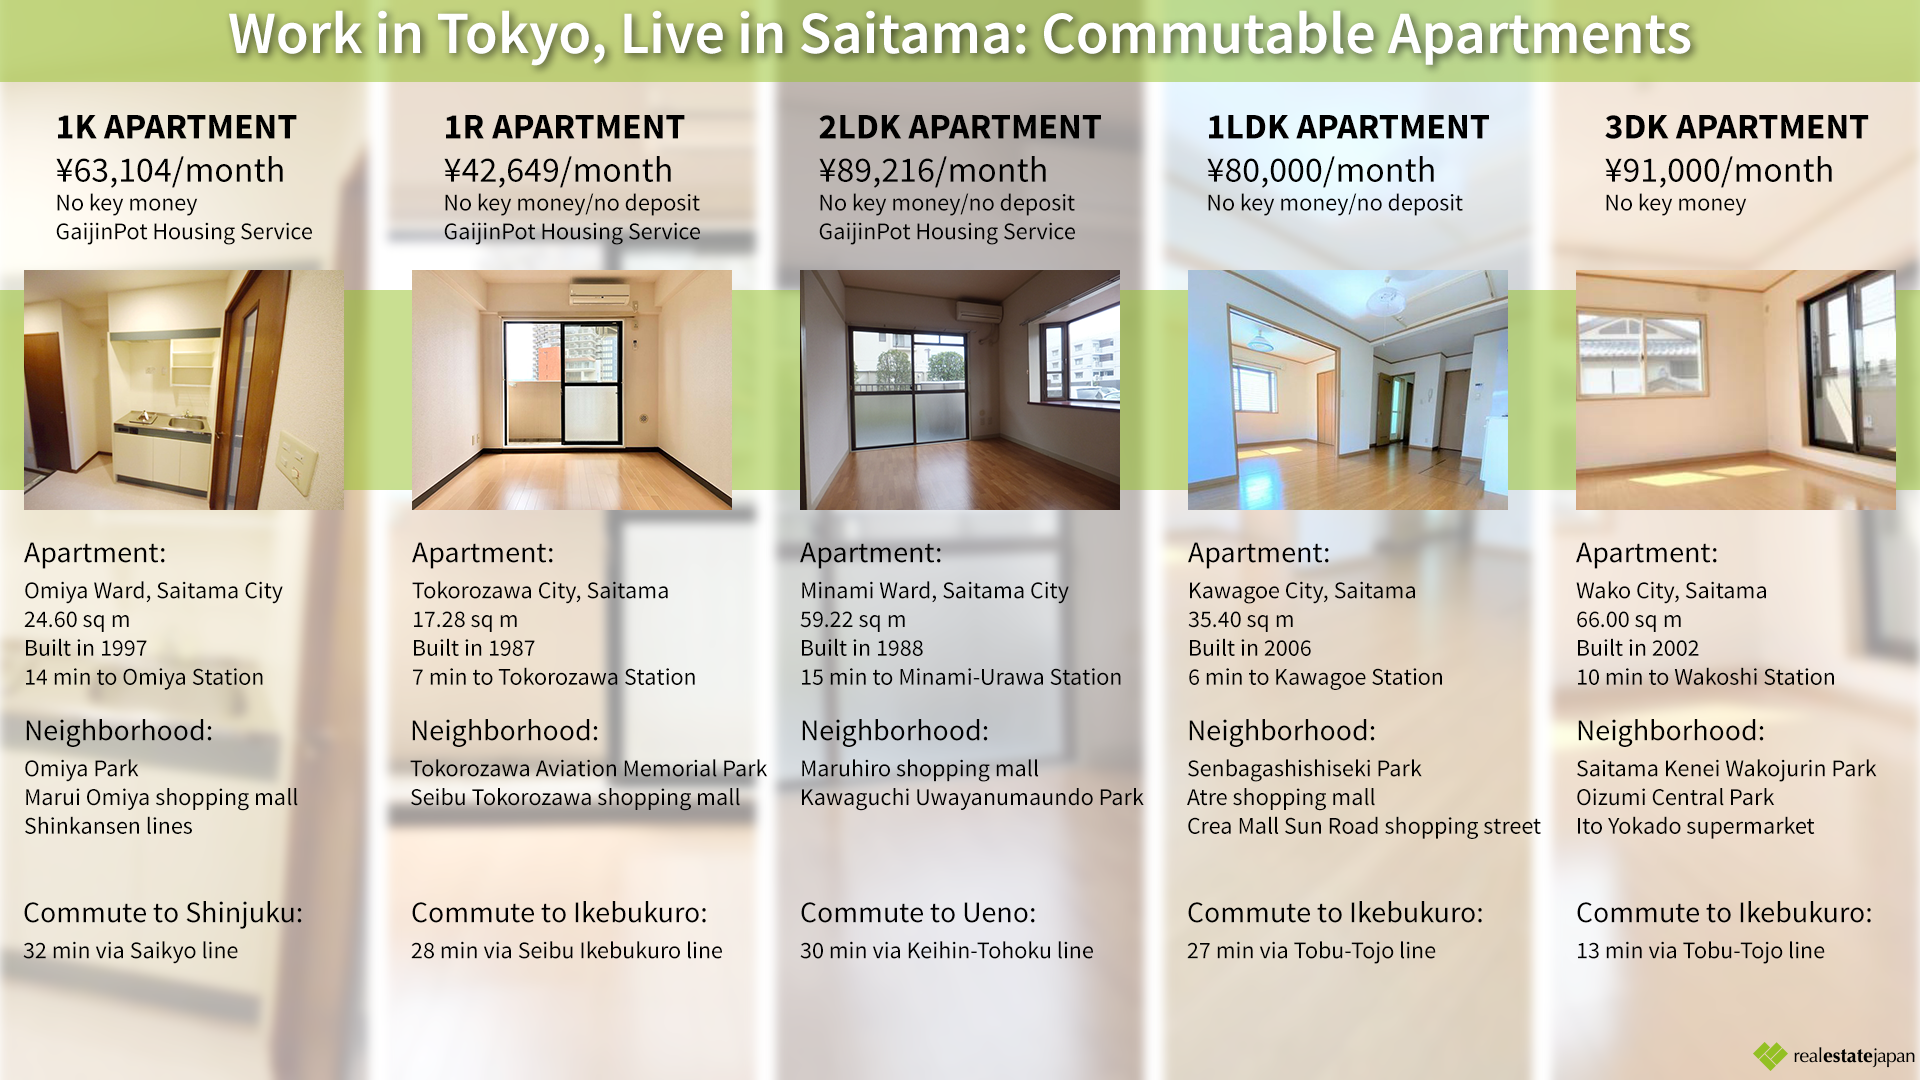 Work in Tokyo, Live in Saitama: 5 Commutable Neighborhoods and Featured Apartments